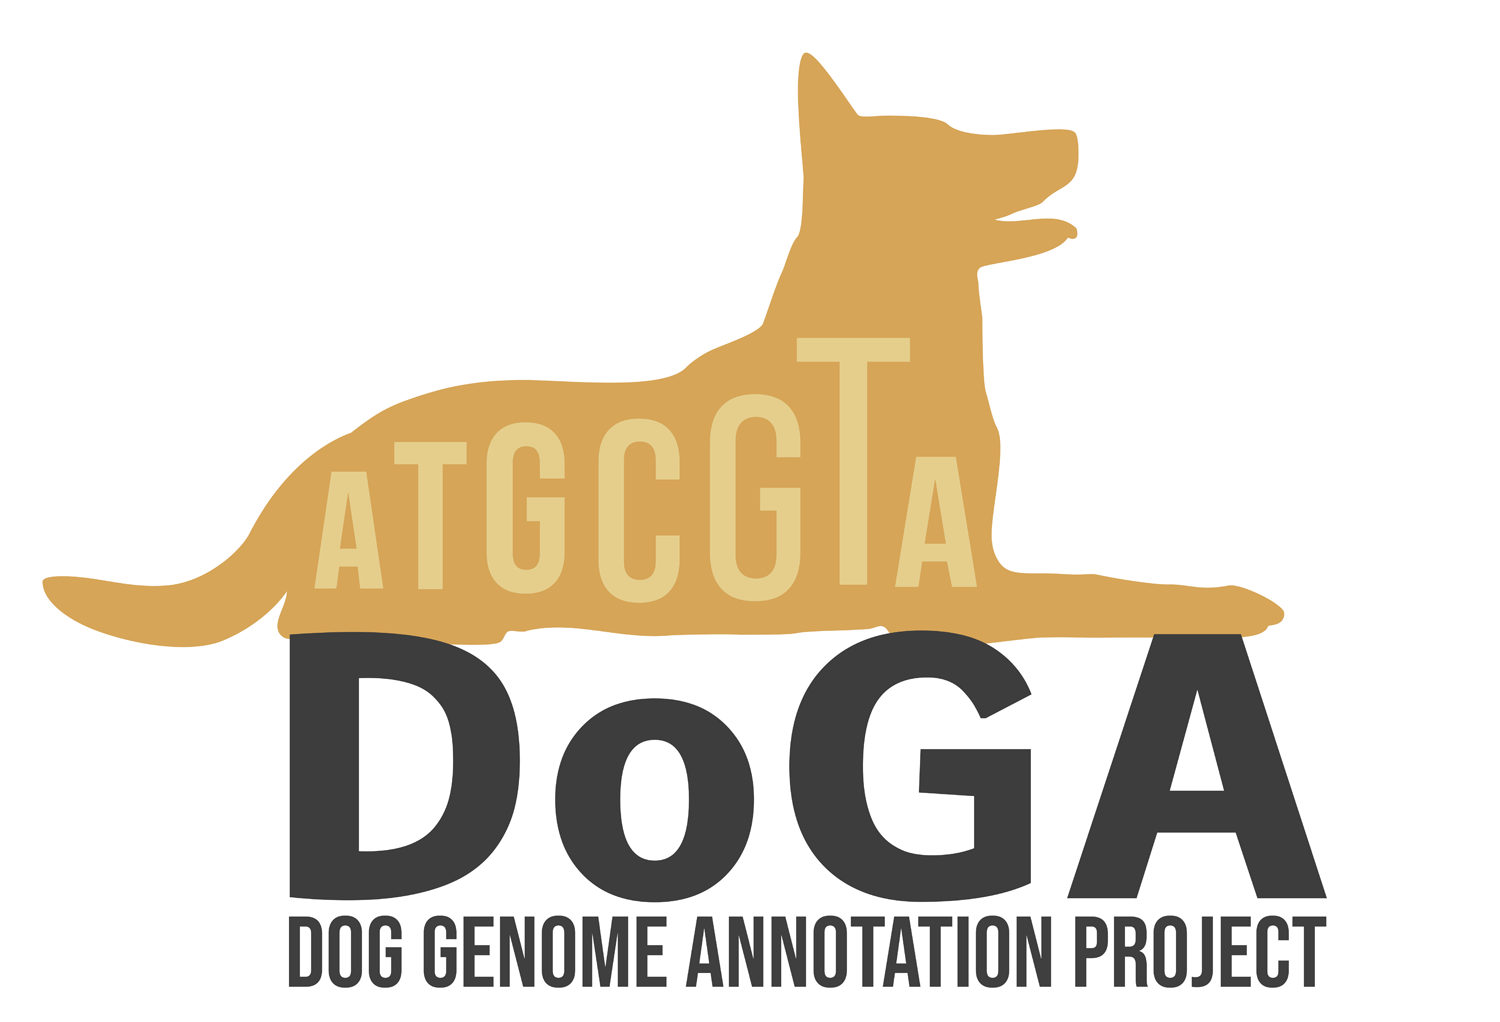 THE DOG GENOME ANNOTATION (DoGA) PROJECT